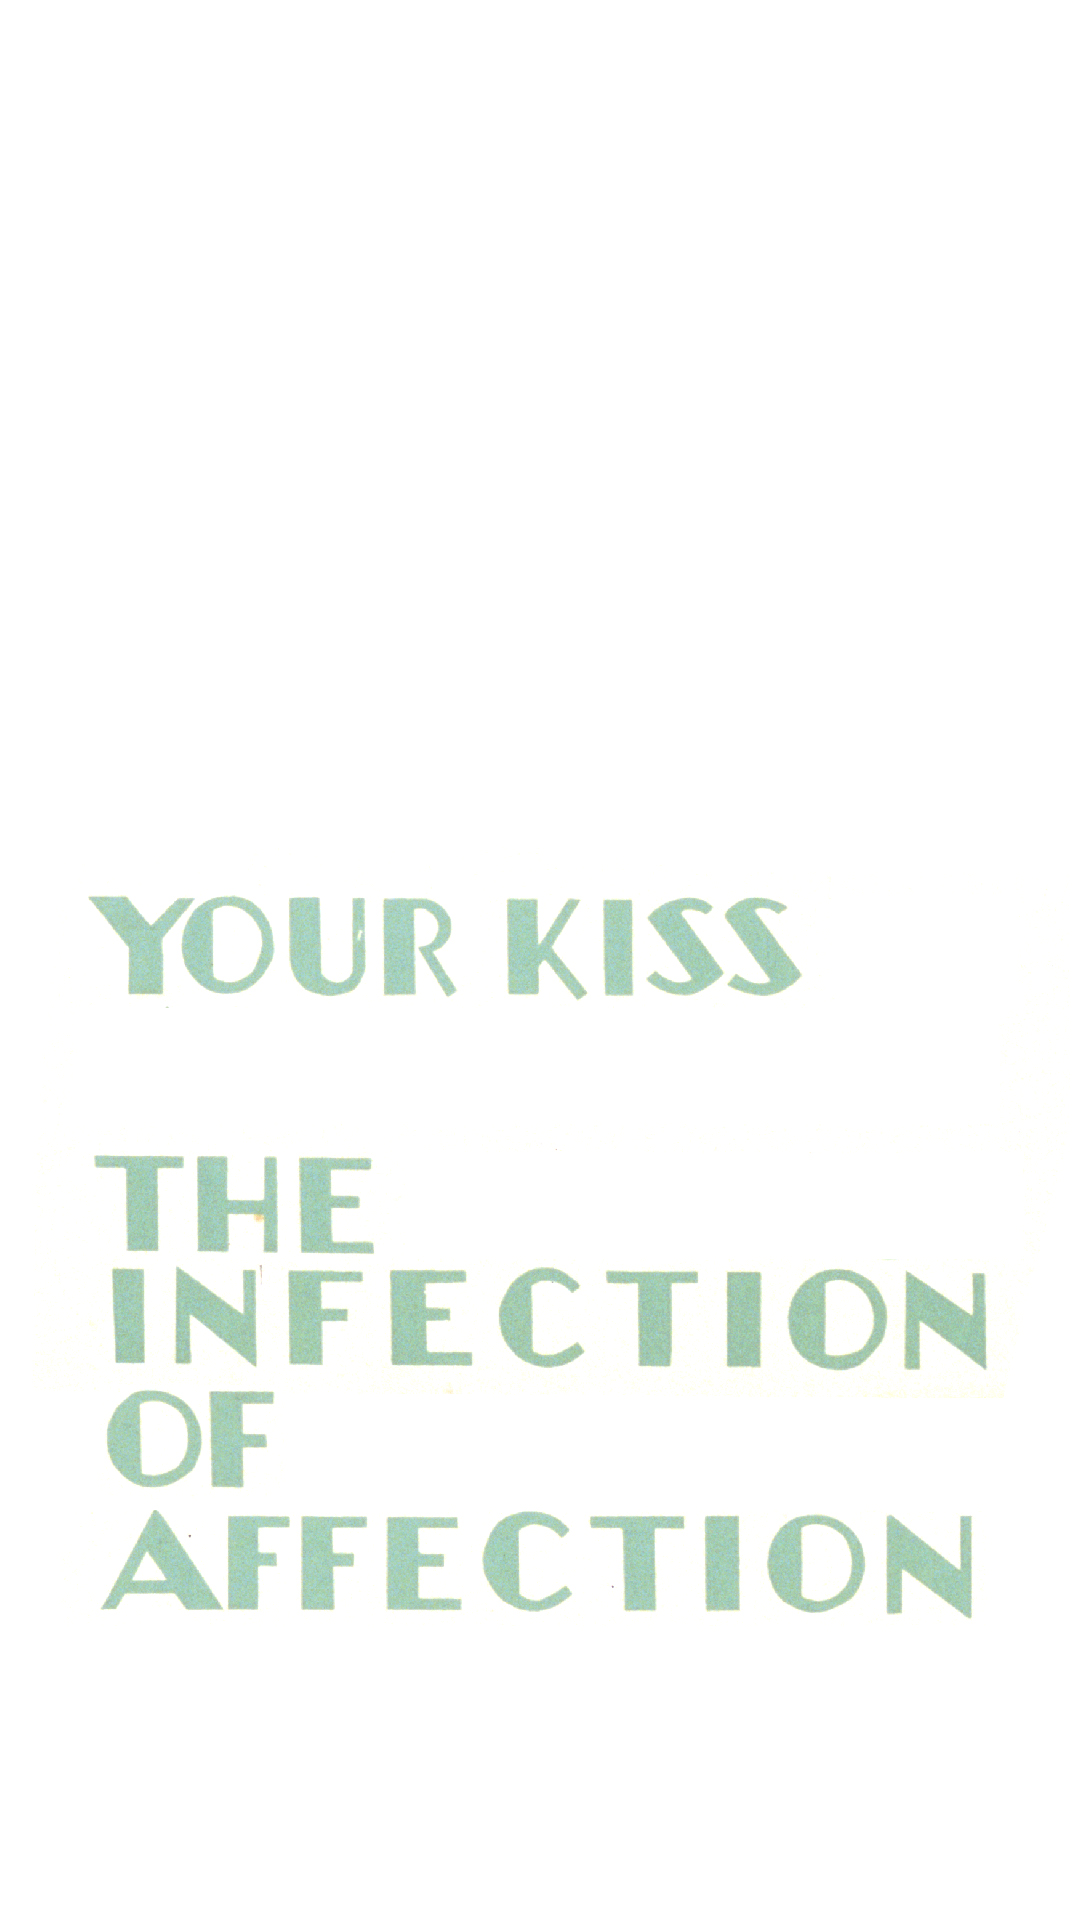 infectionofaffection.jpg